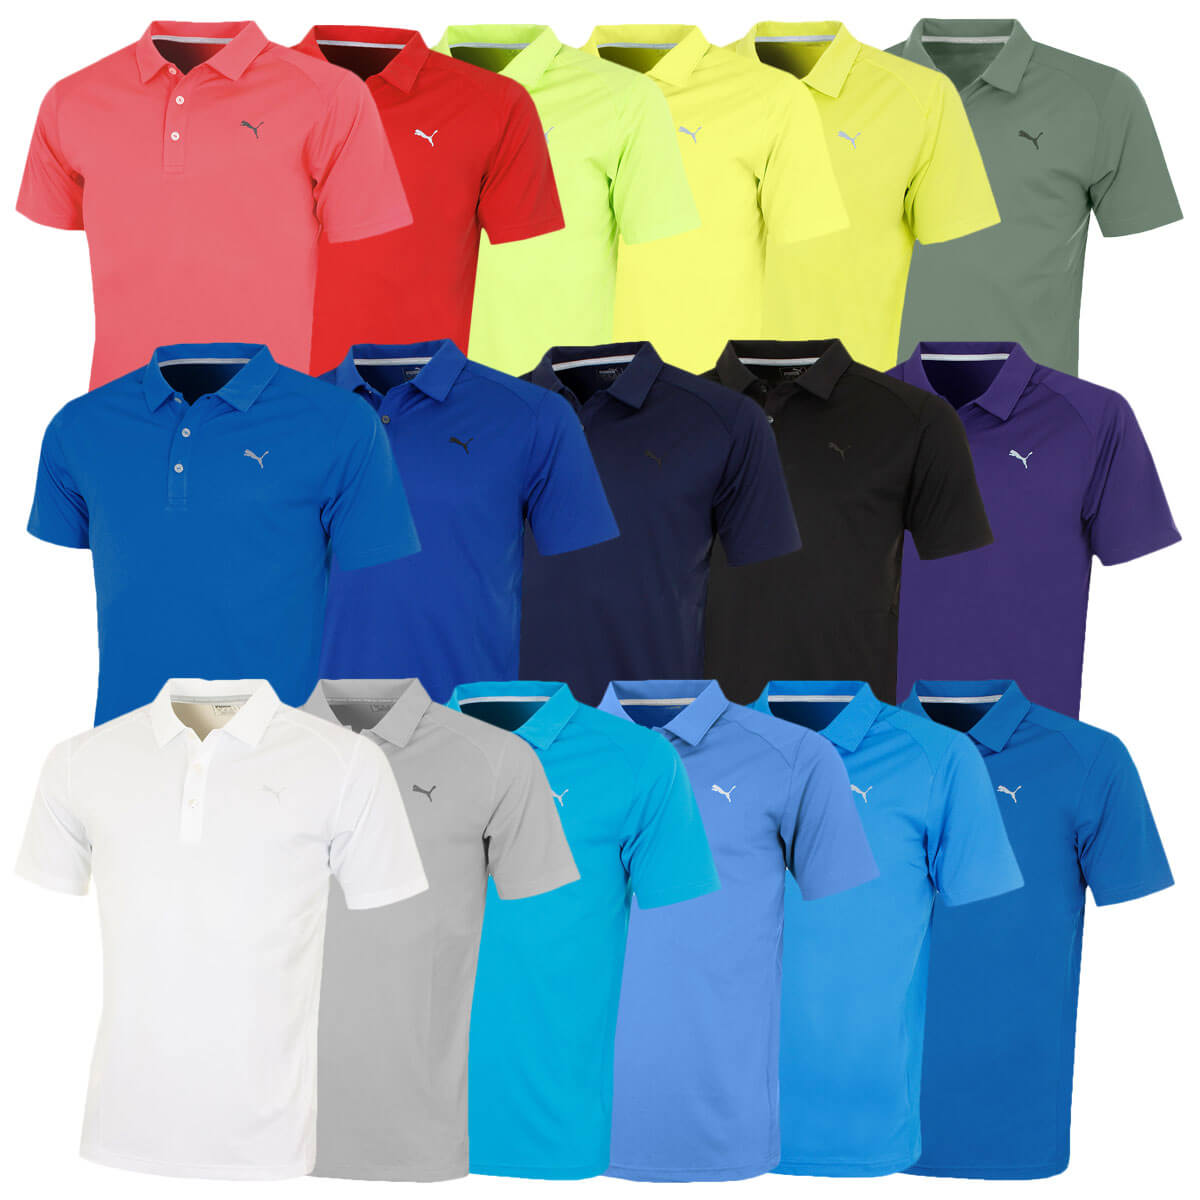 wholesale huge discount reasonable price Puma Golf Mens Essential Pounce Polo Shirt DryCell Lightweight ...